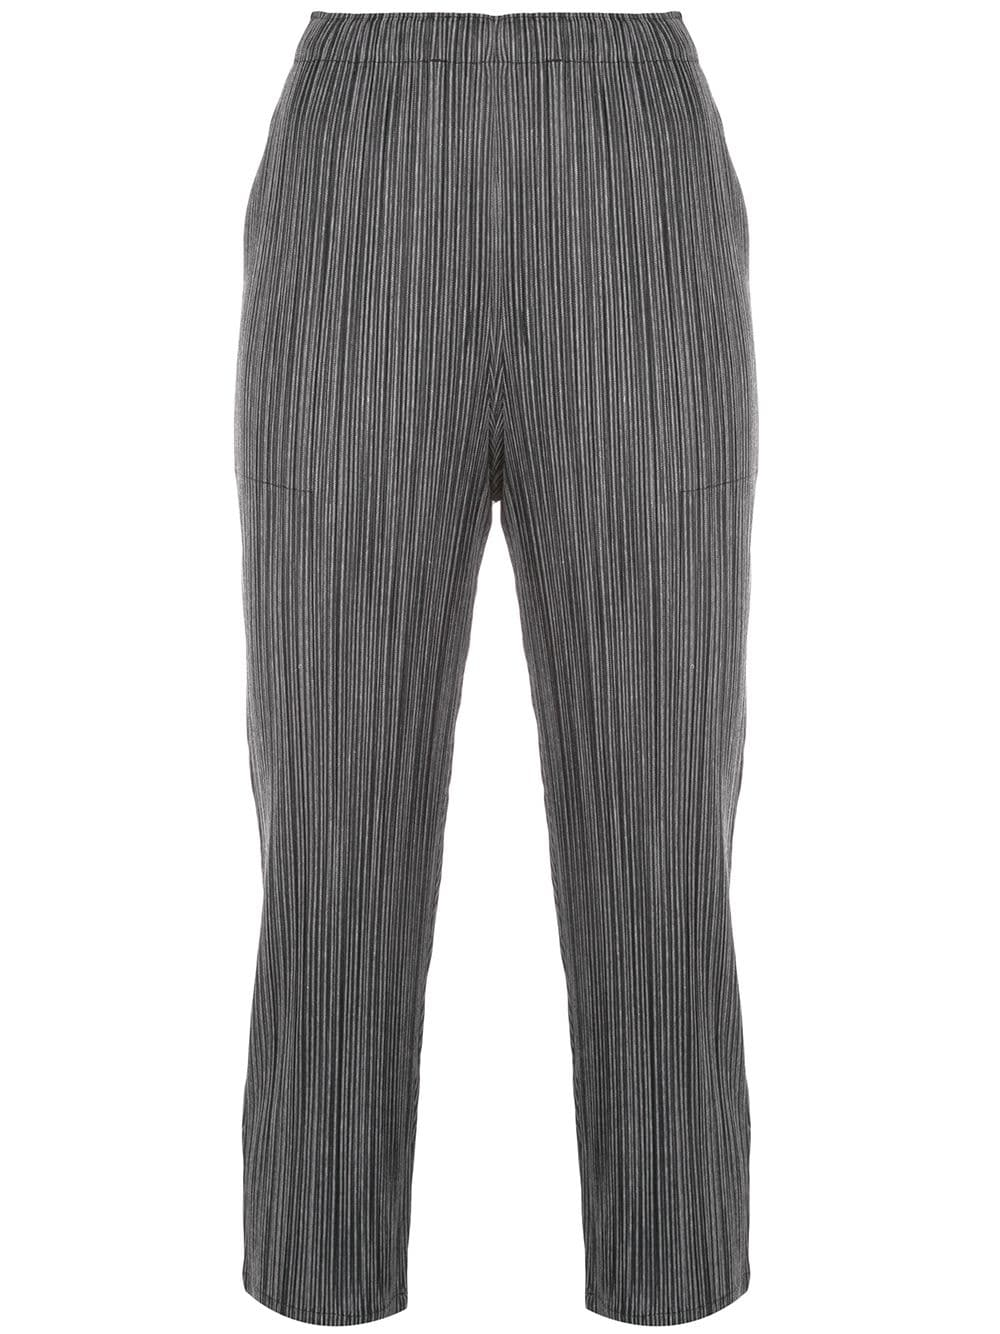 PLEATS PLEASE ISSEY MIYAKE WOMEN COTTON PINSTRIPE PANTS